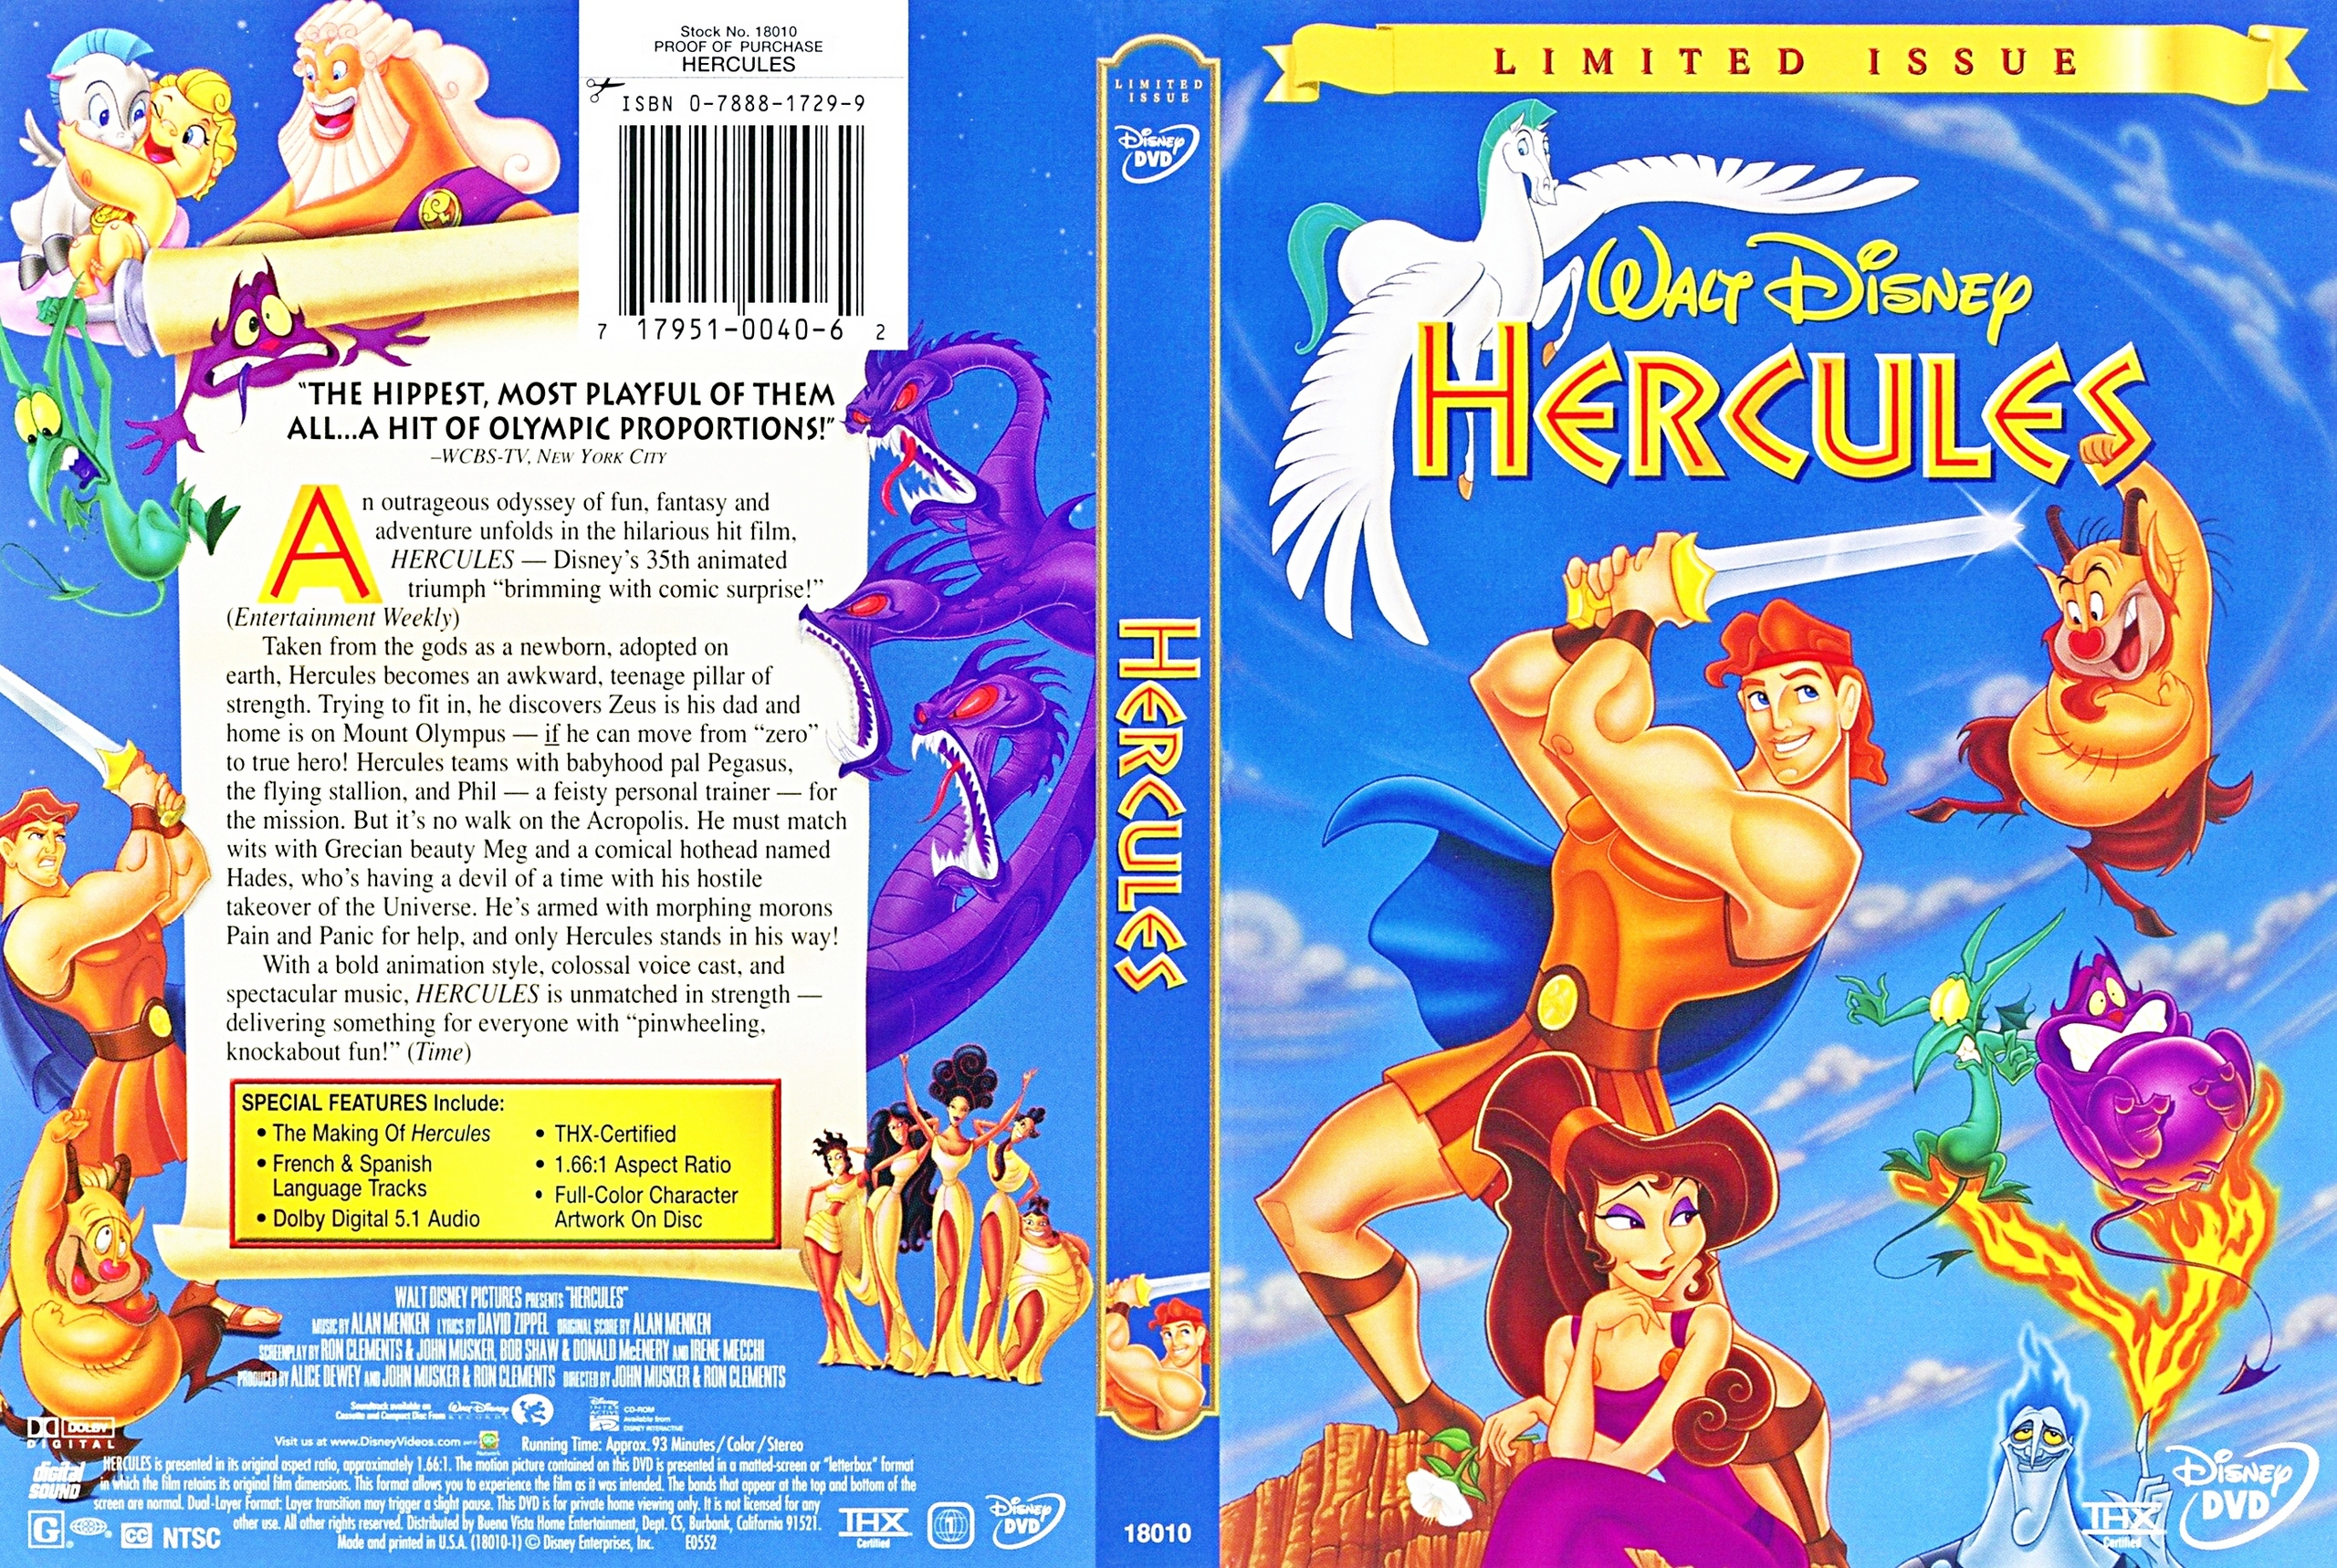 Walt ディズニー DVD Covers - Hercules: Limited Issue